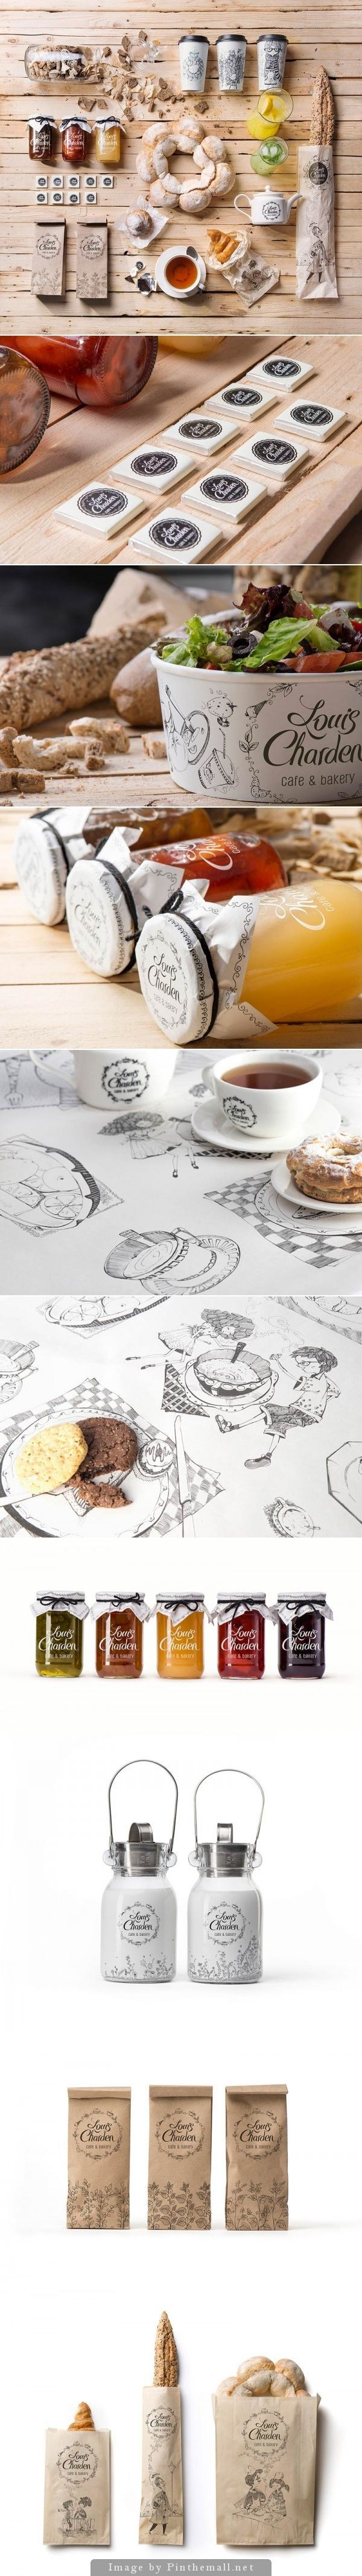 Louis Charden Cafe and Bakery Branding